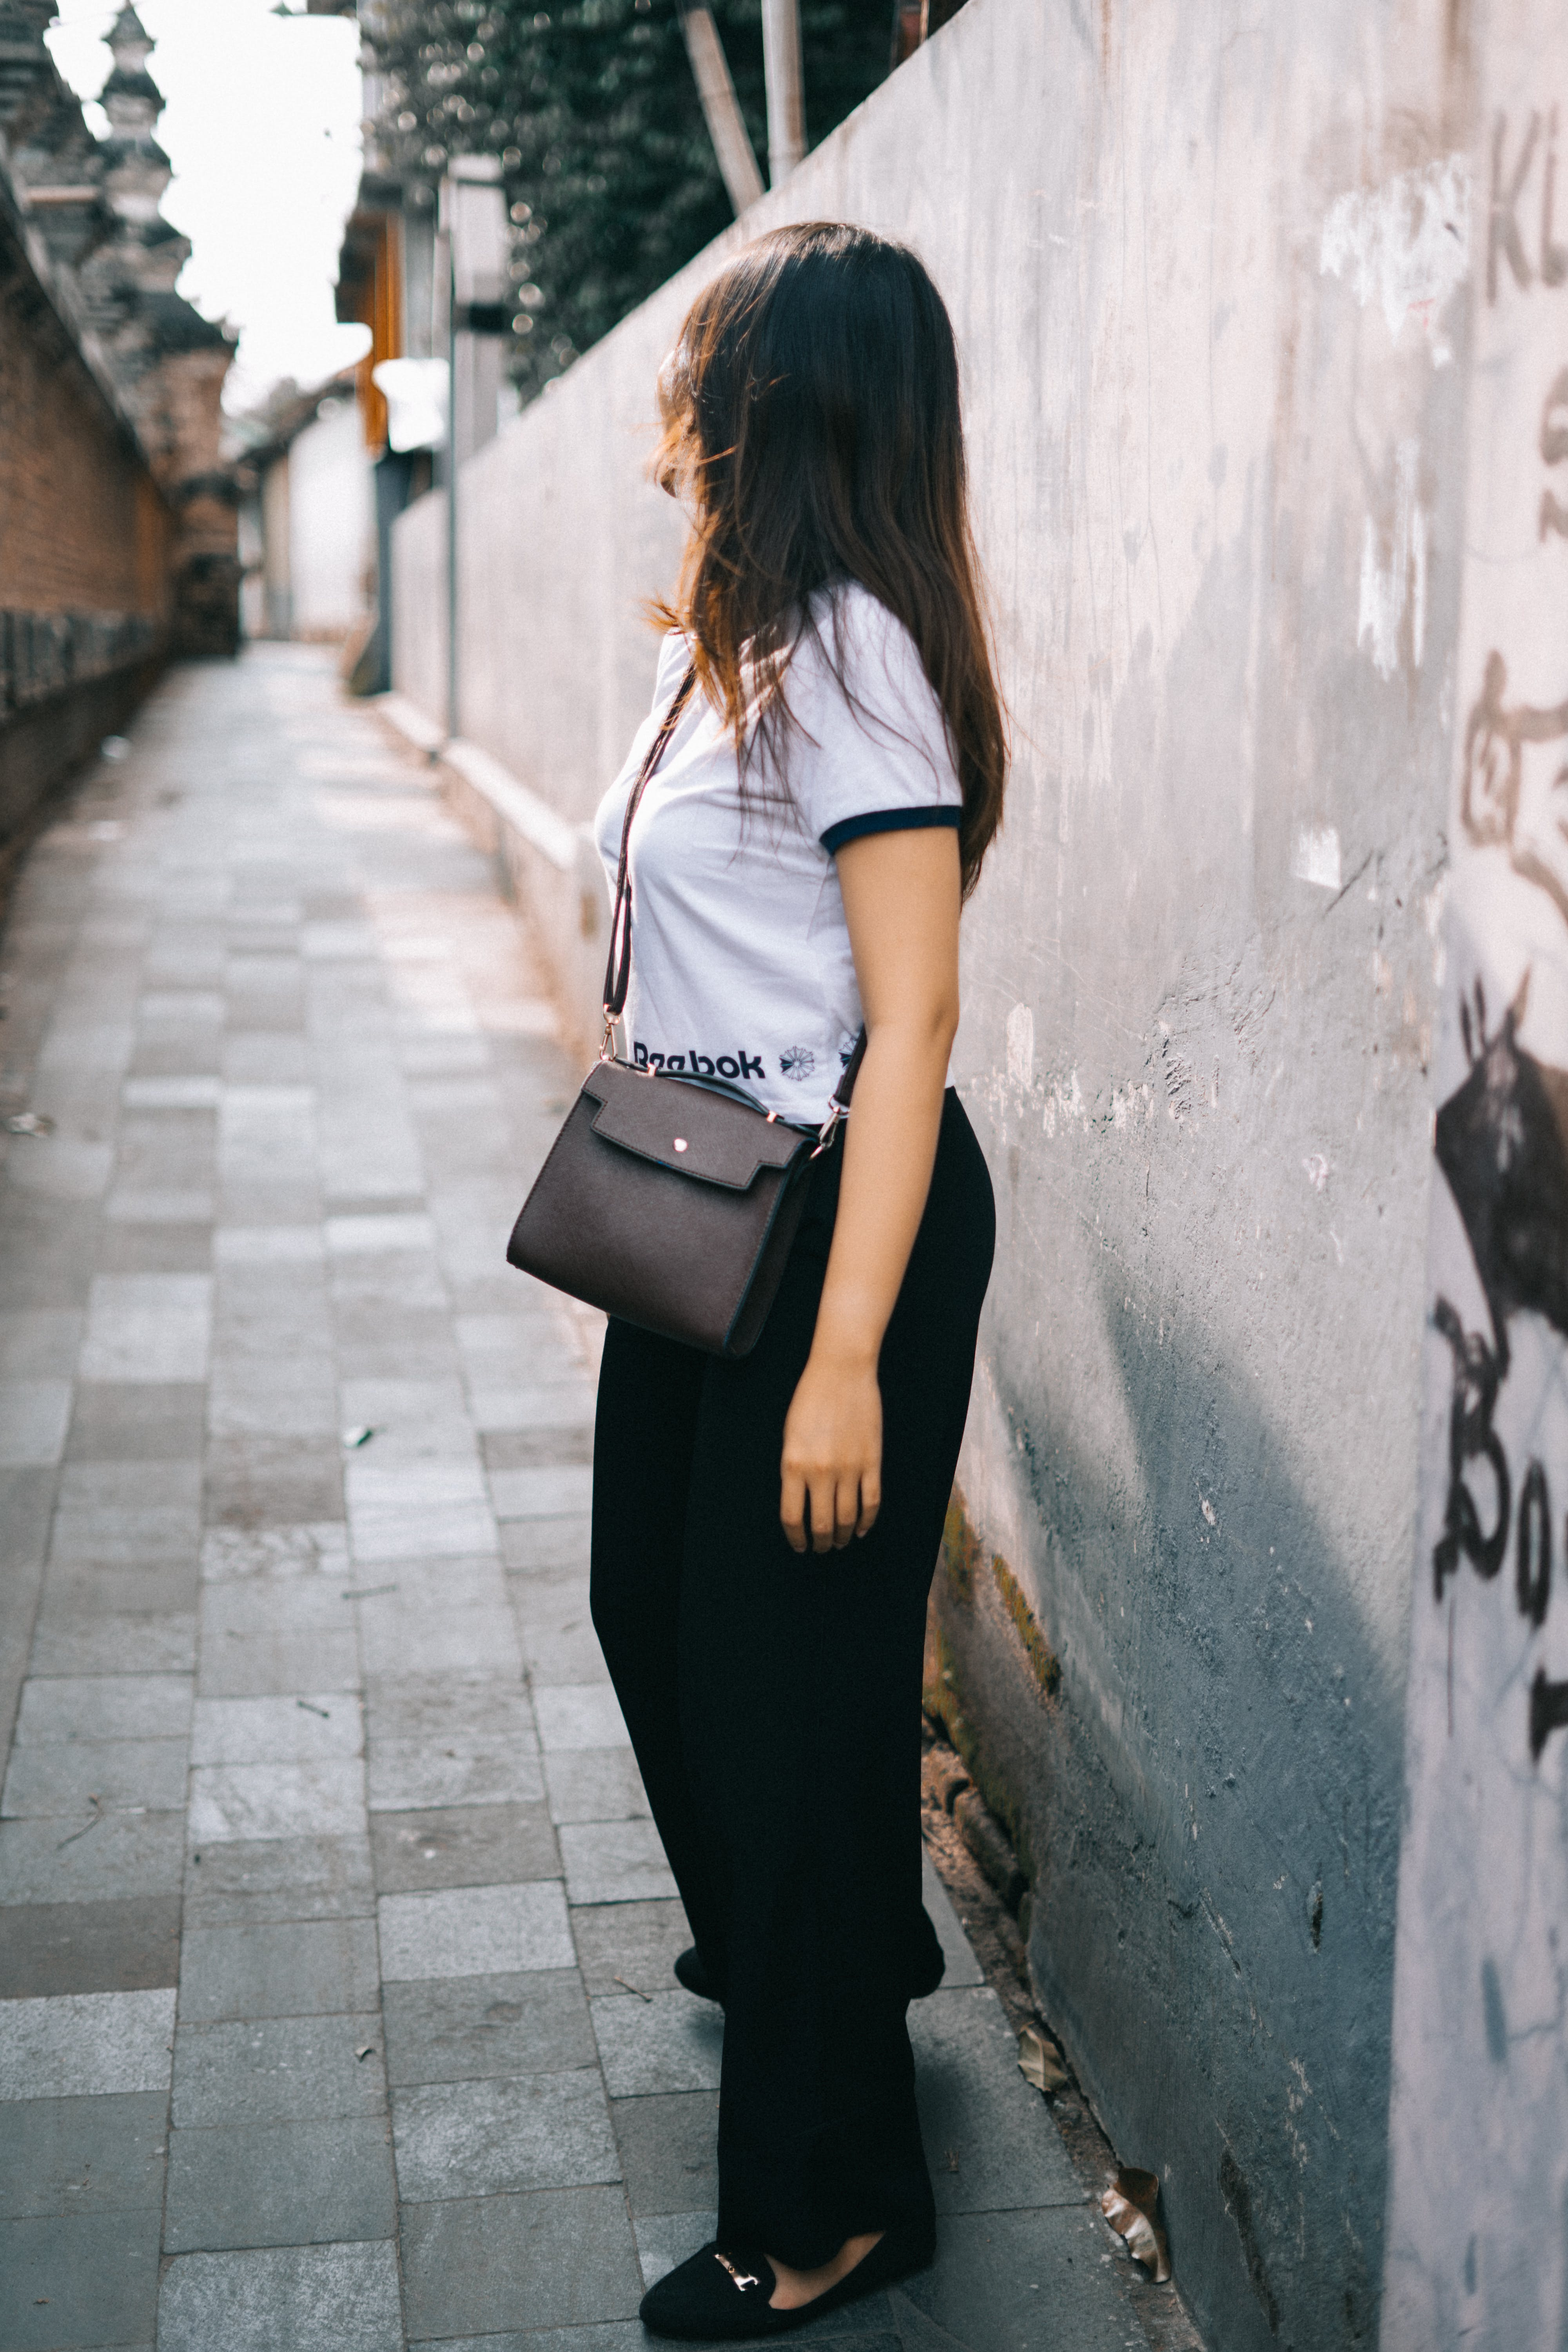 Woman Wearing Black and White T-shirt and Black Pants